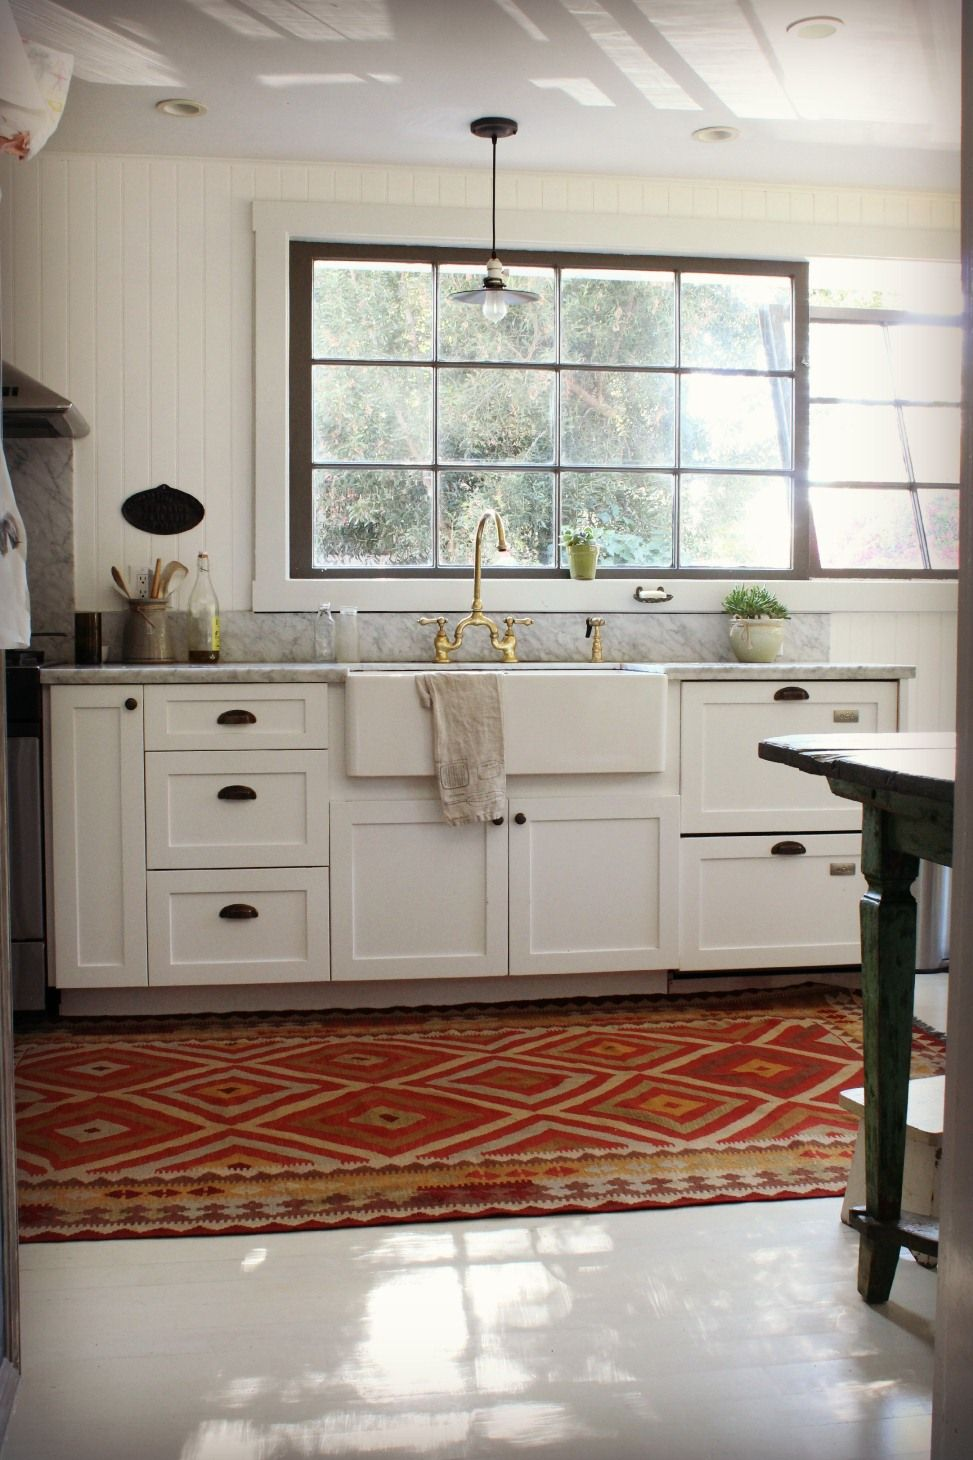 Country Kitchen Style With Red Oriental Rug Set In Front Of White